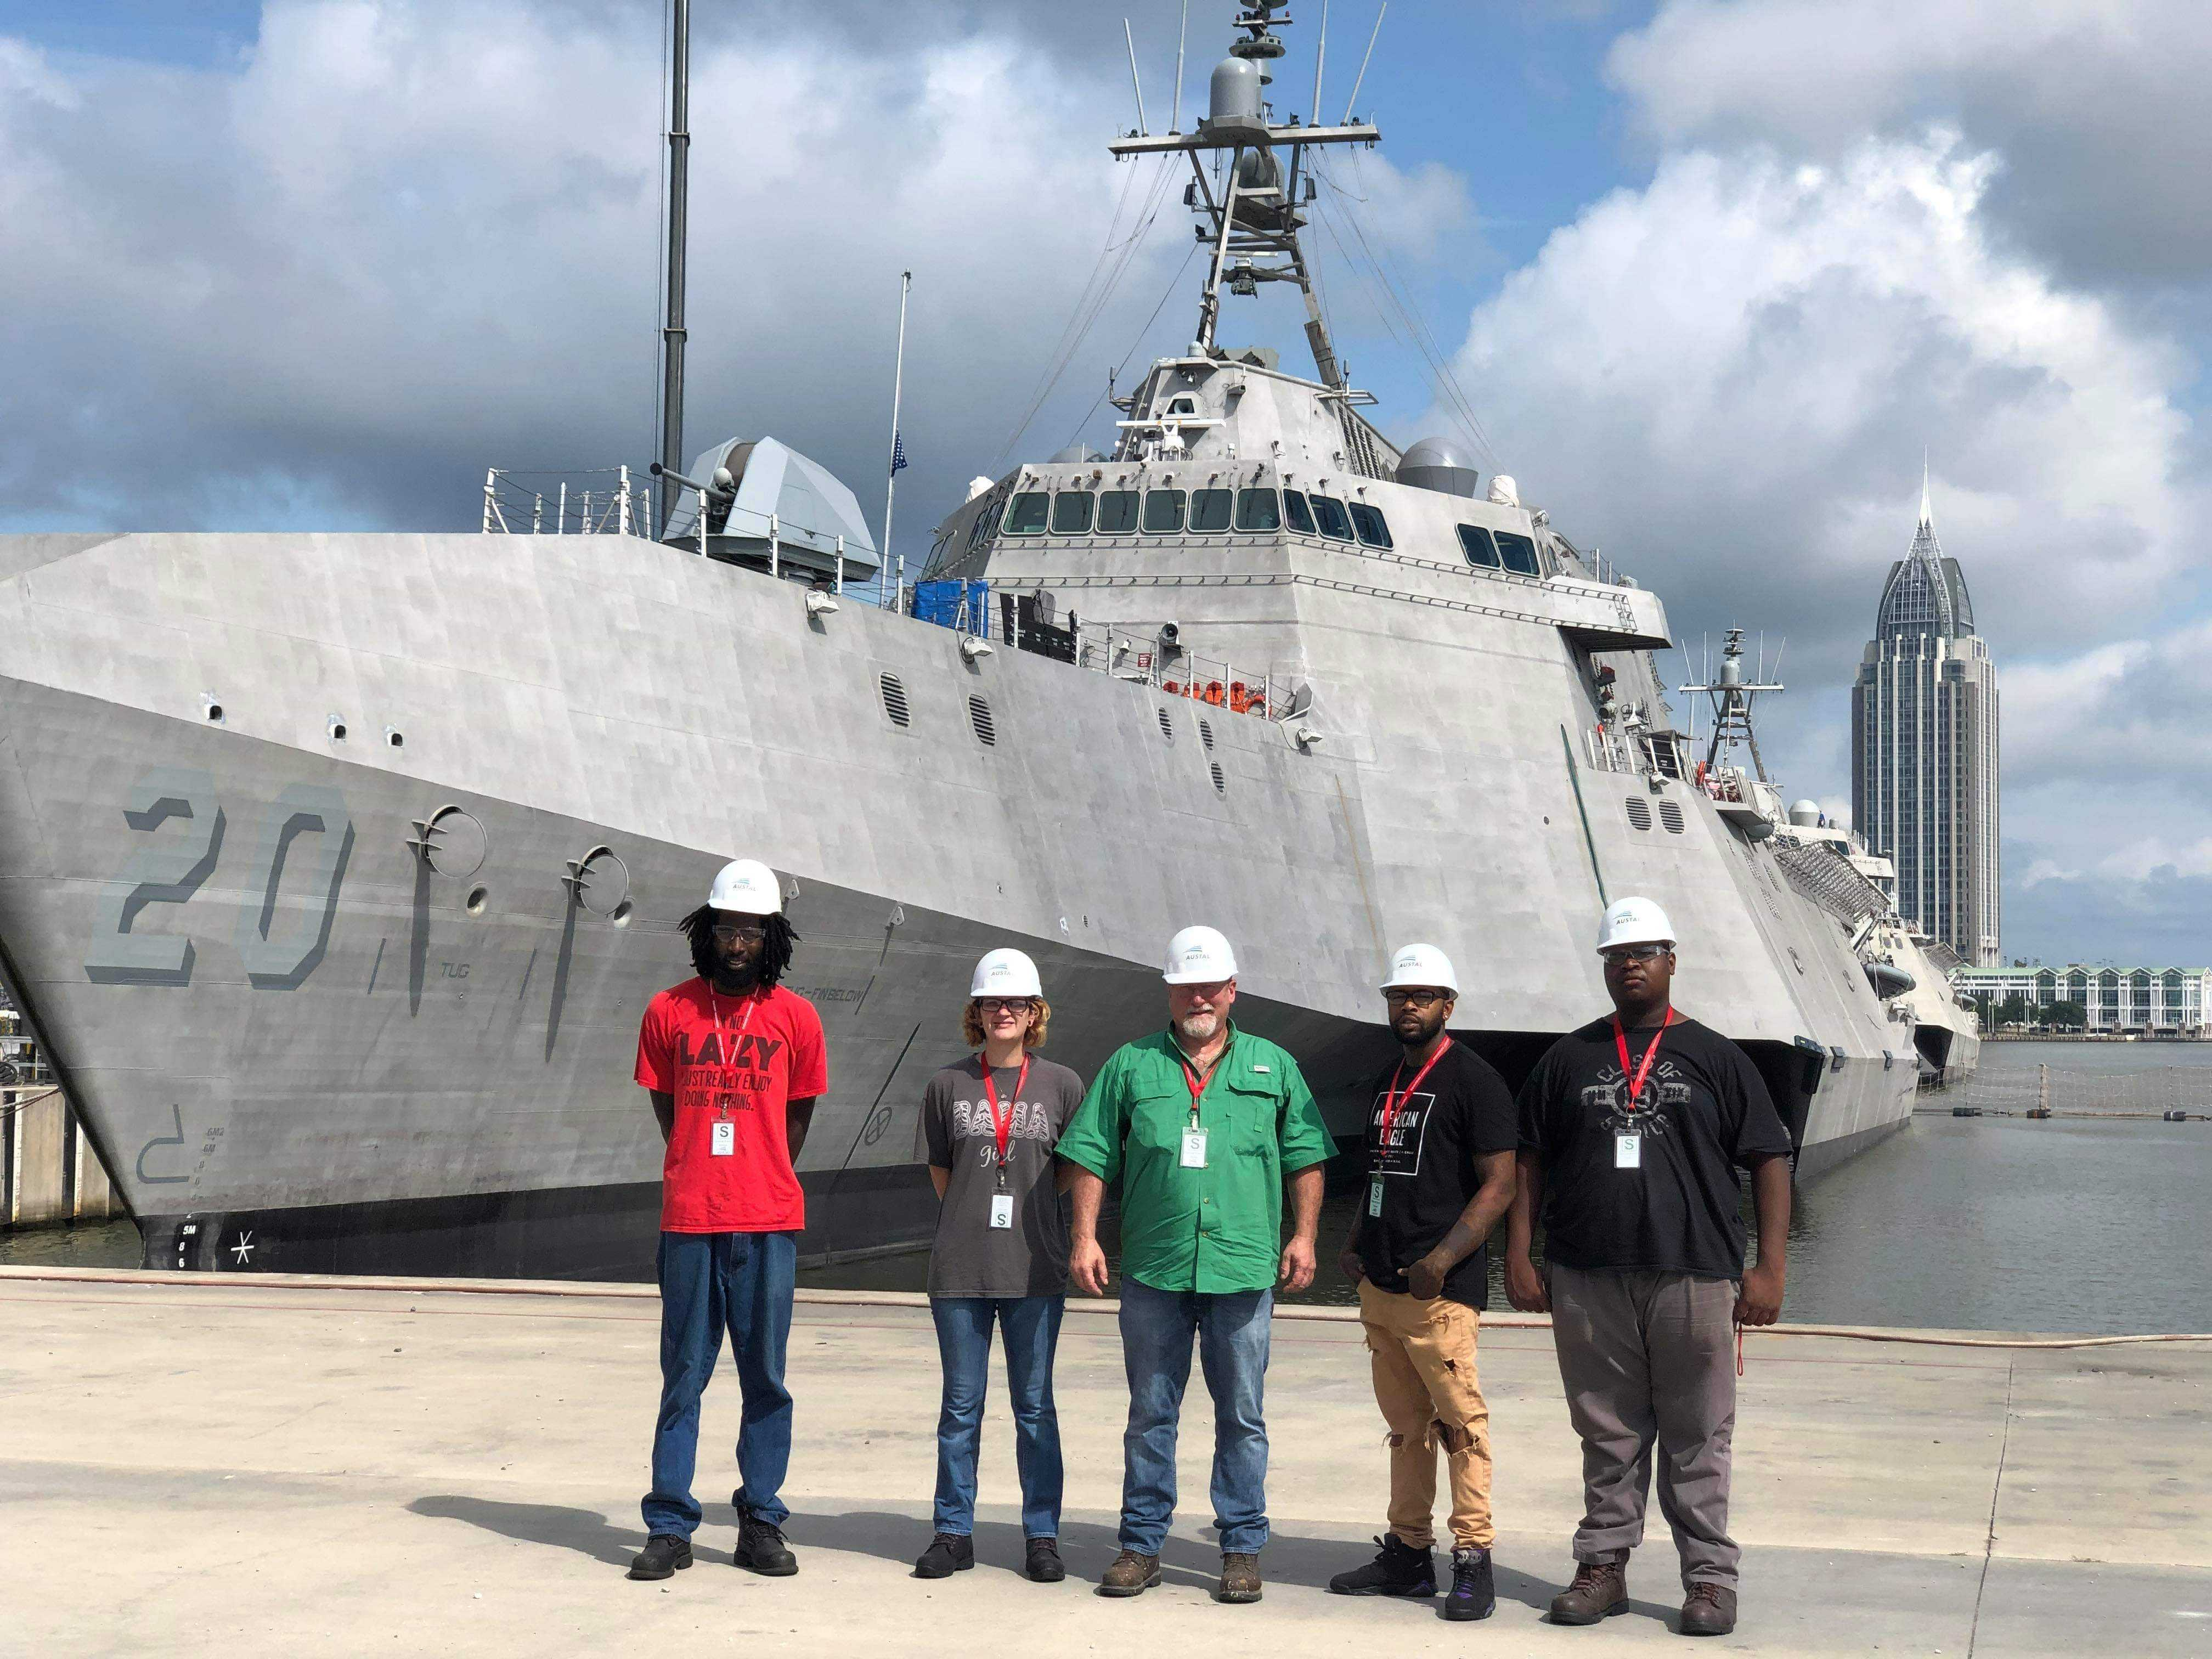 Welding students standing in front of a battleship at Austal